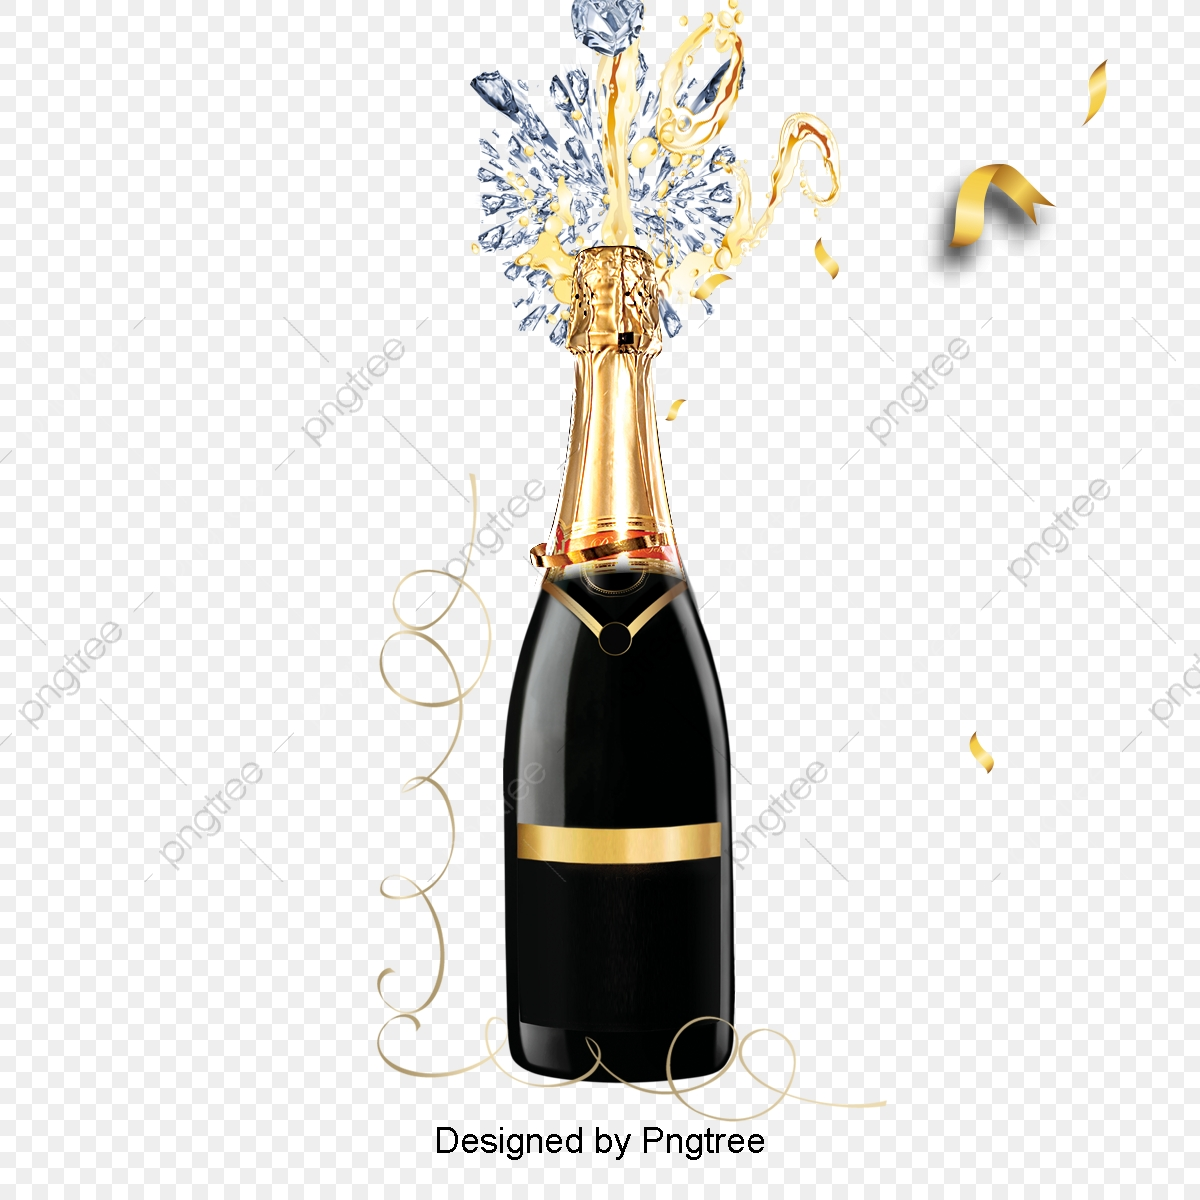 Black Champagne Celebrates Golden Border Elements, Celebrate.